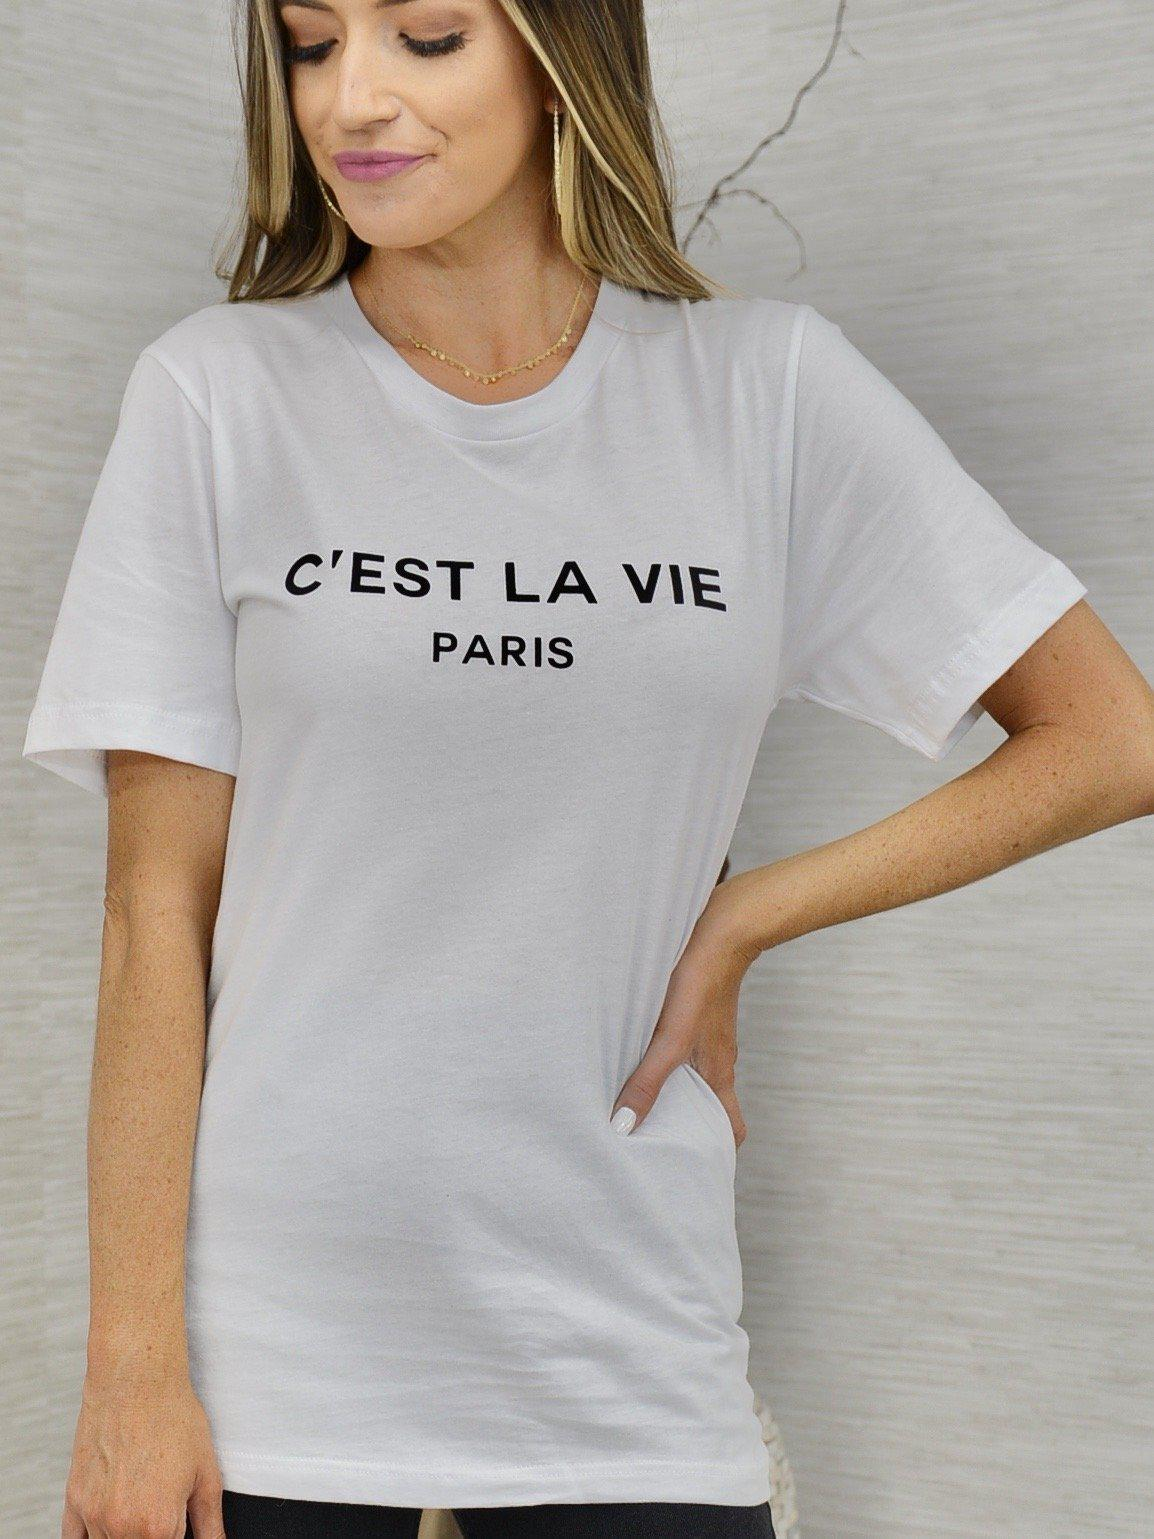 C'est la Vie Top-Women's -New Arrivals-Runway Seven